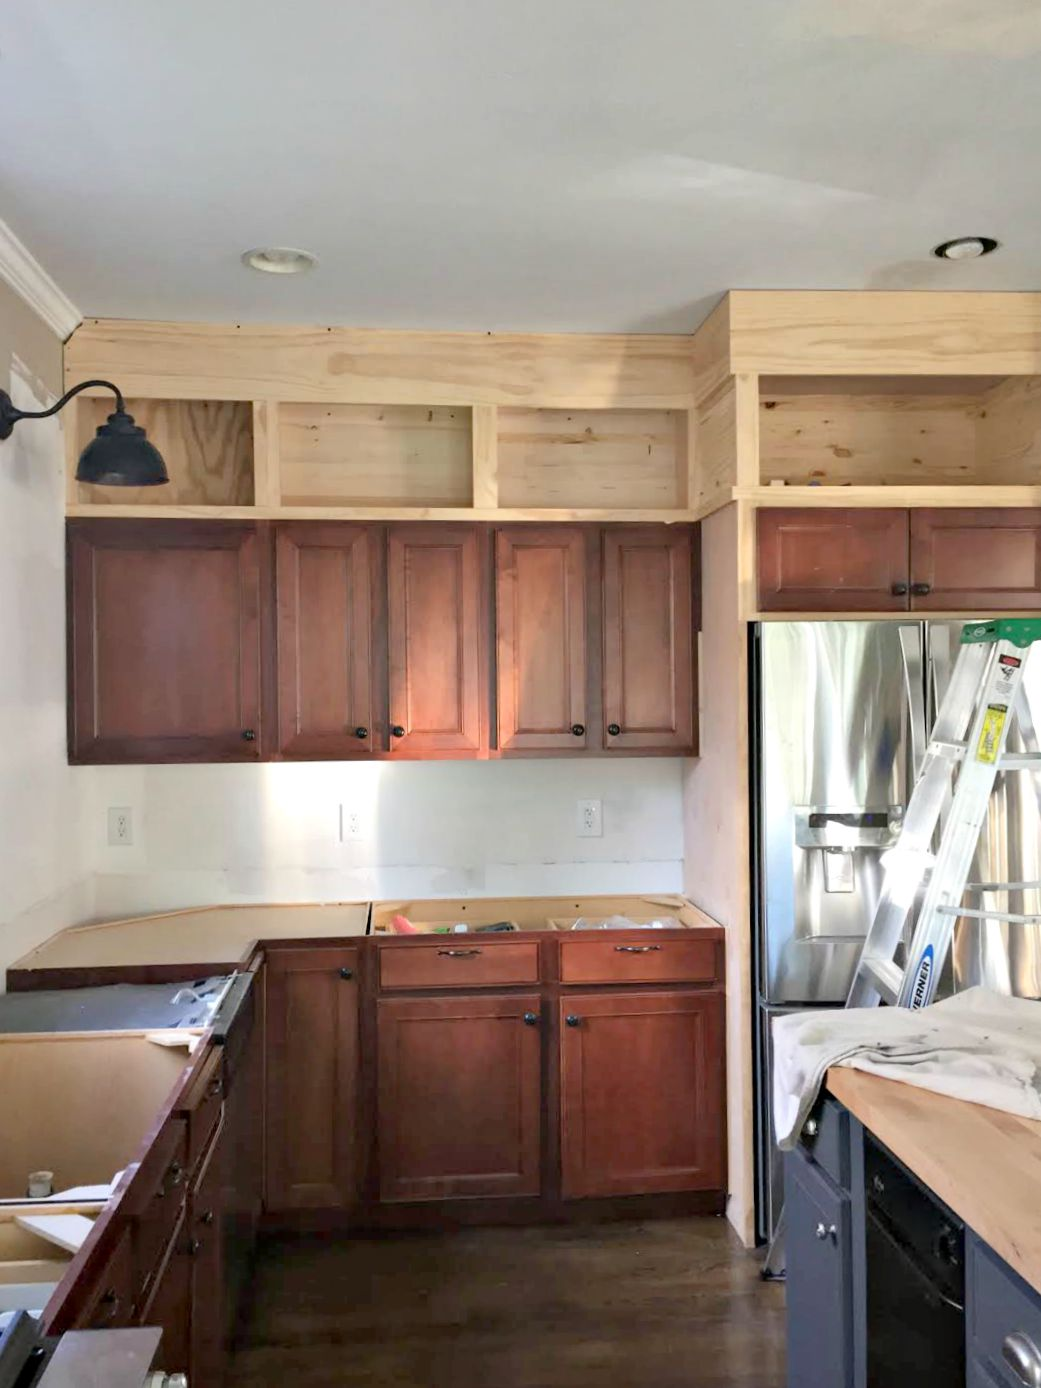 Delicieux Building Kitchen Cabinets To Ceiling